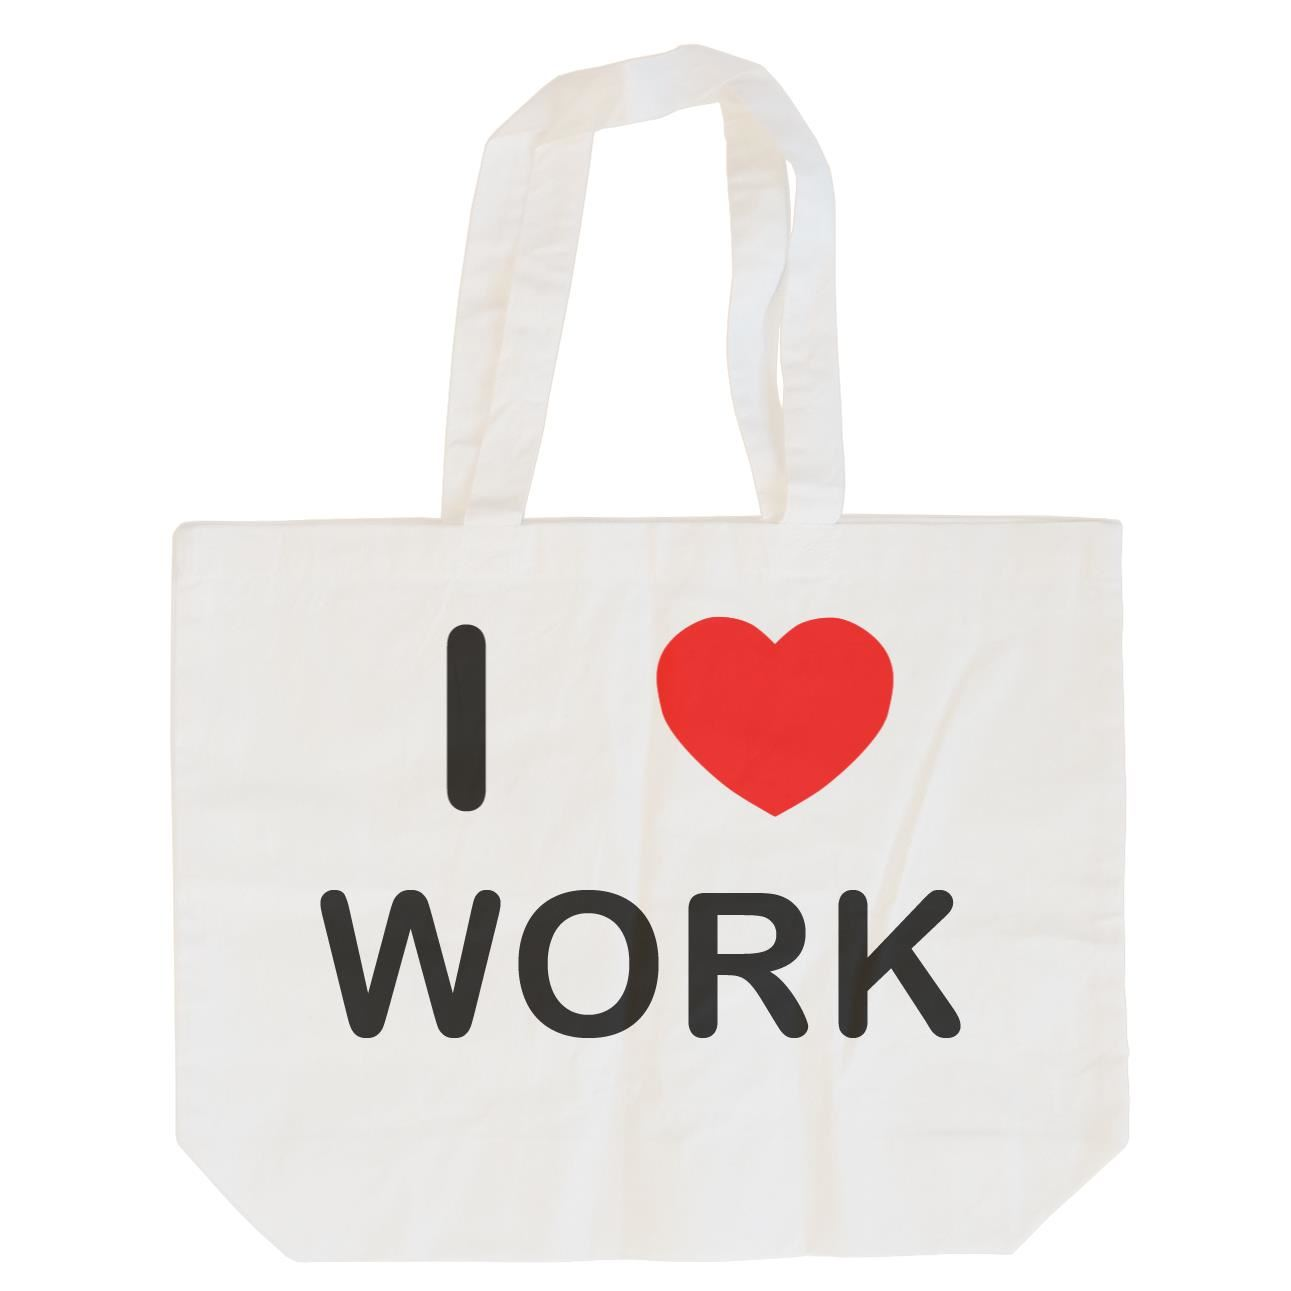 I Love Work - Cotton Bag | Size choice Tote, Shopper or Sling